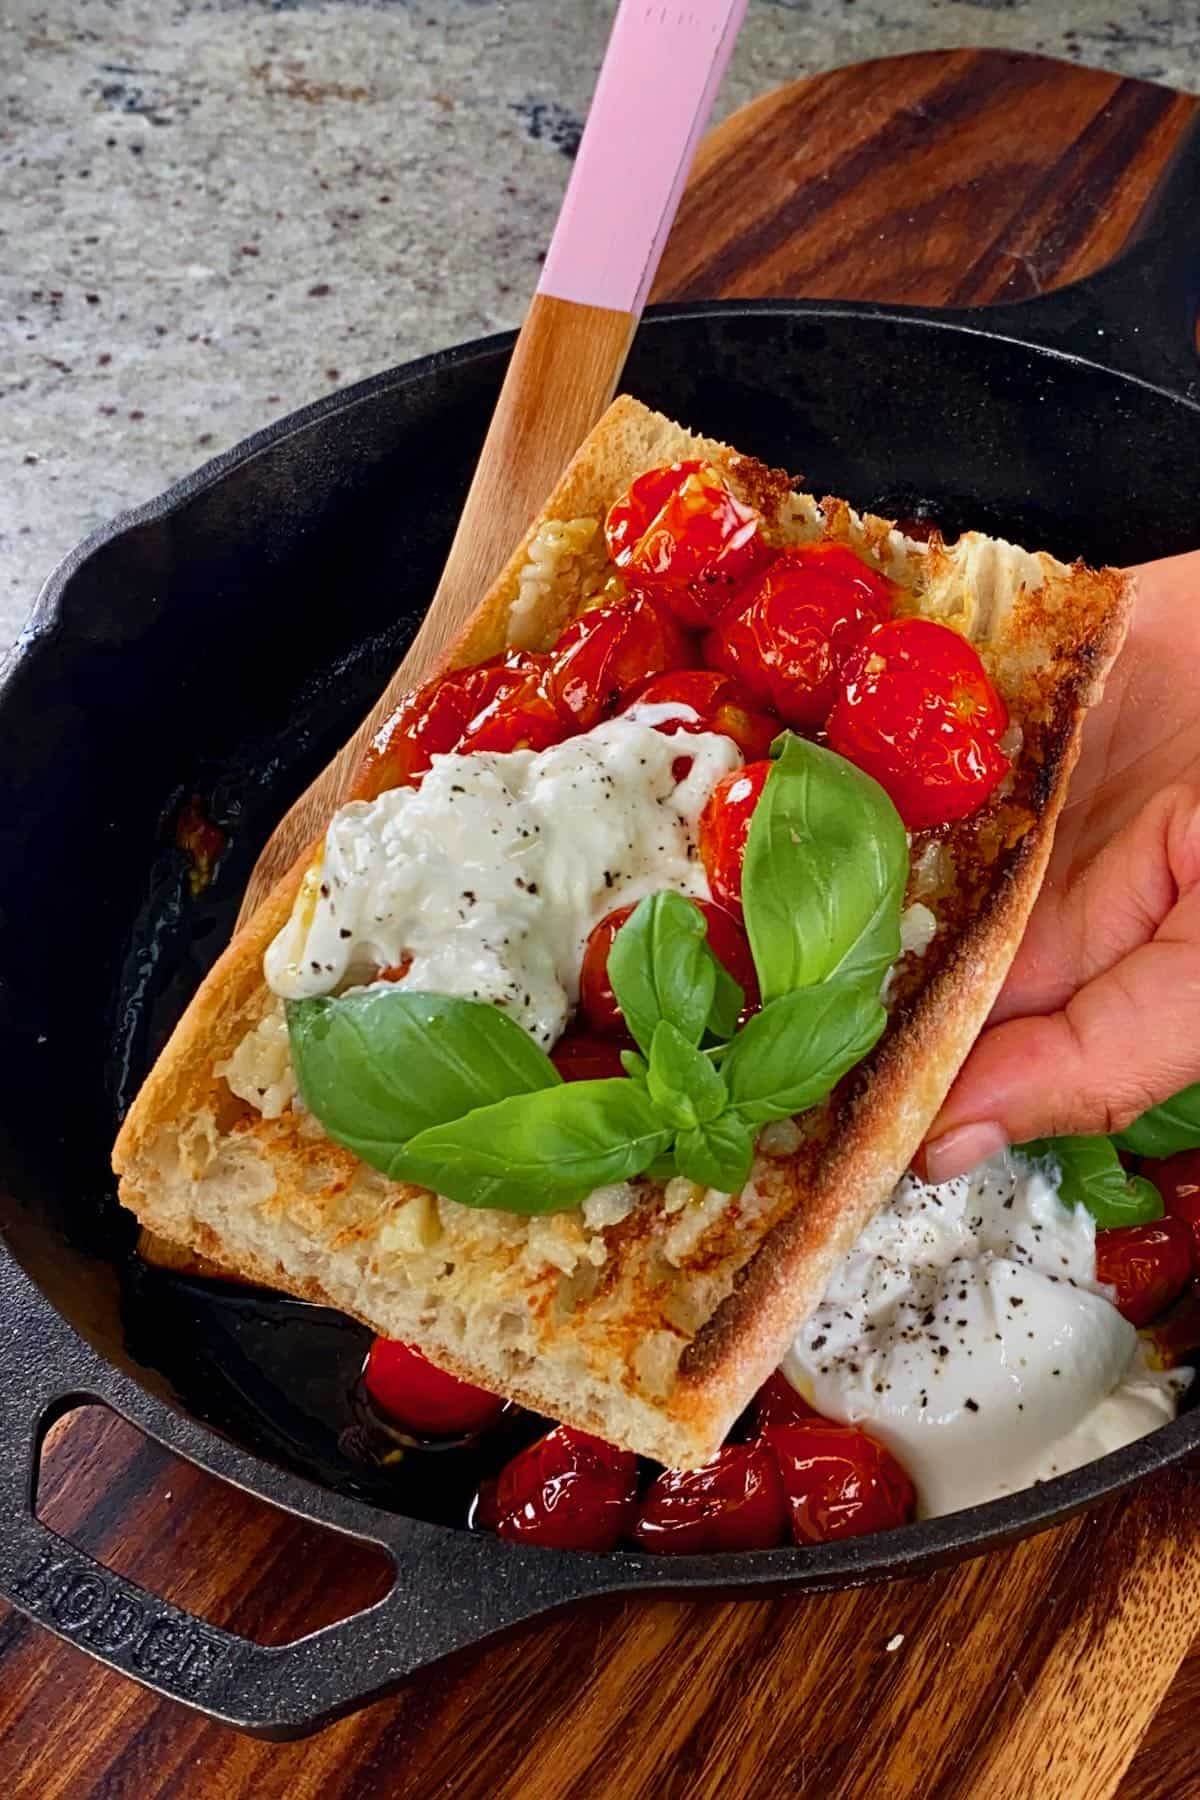 Roasted tomatoes with cheese on a toast